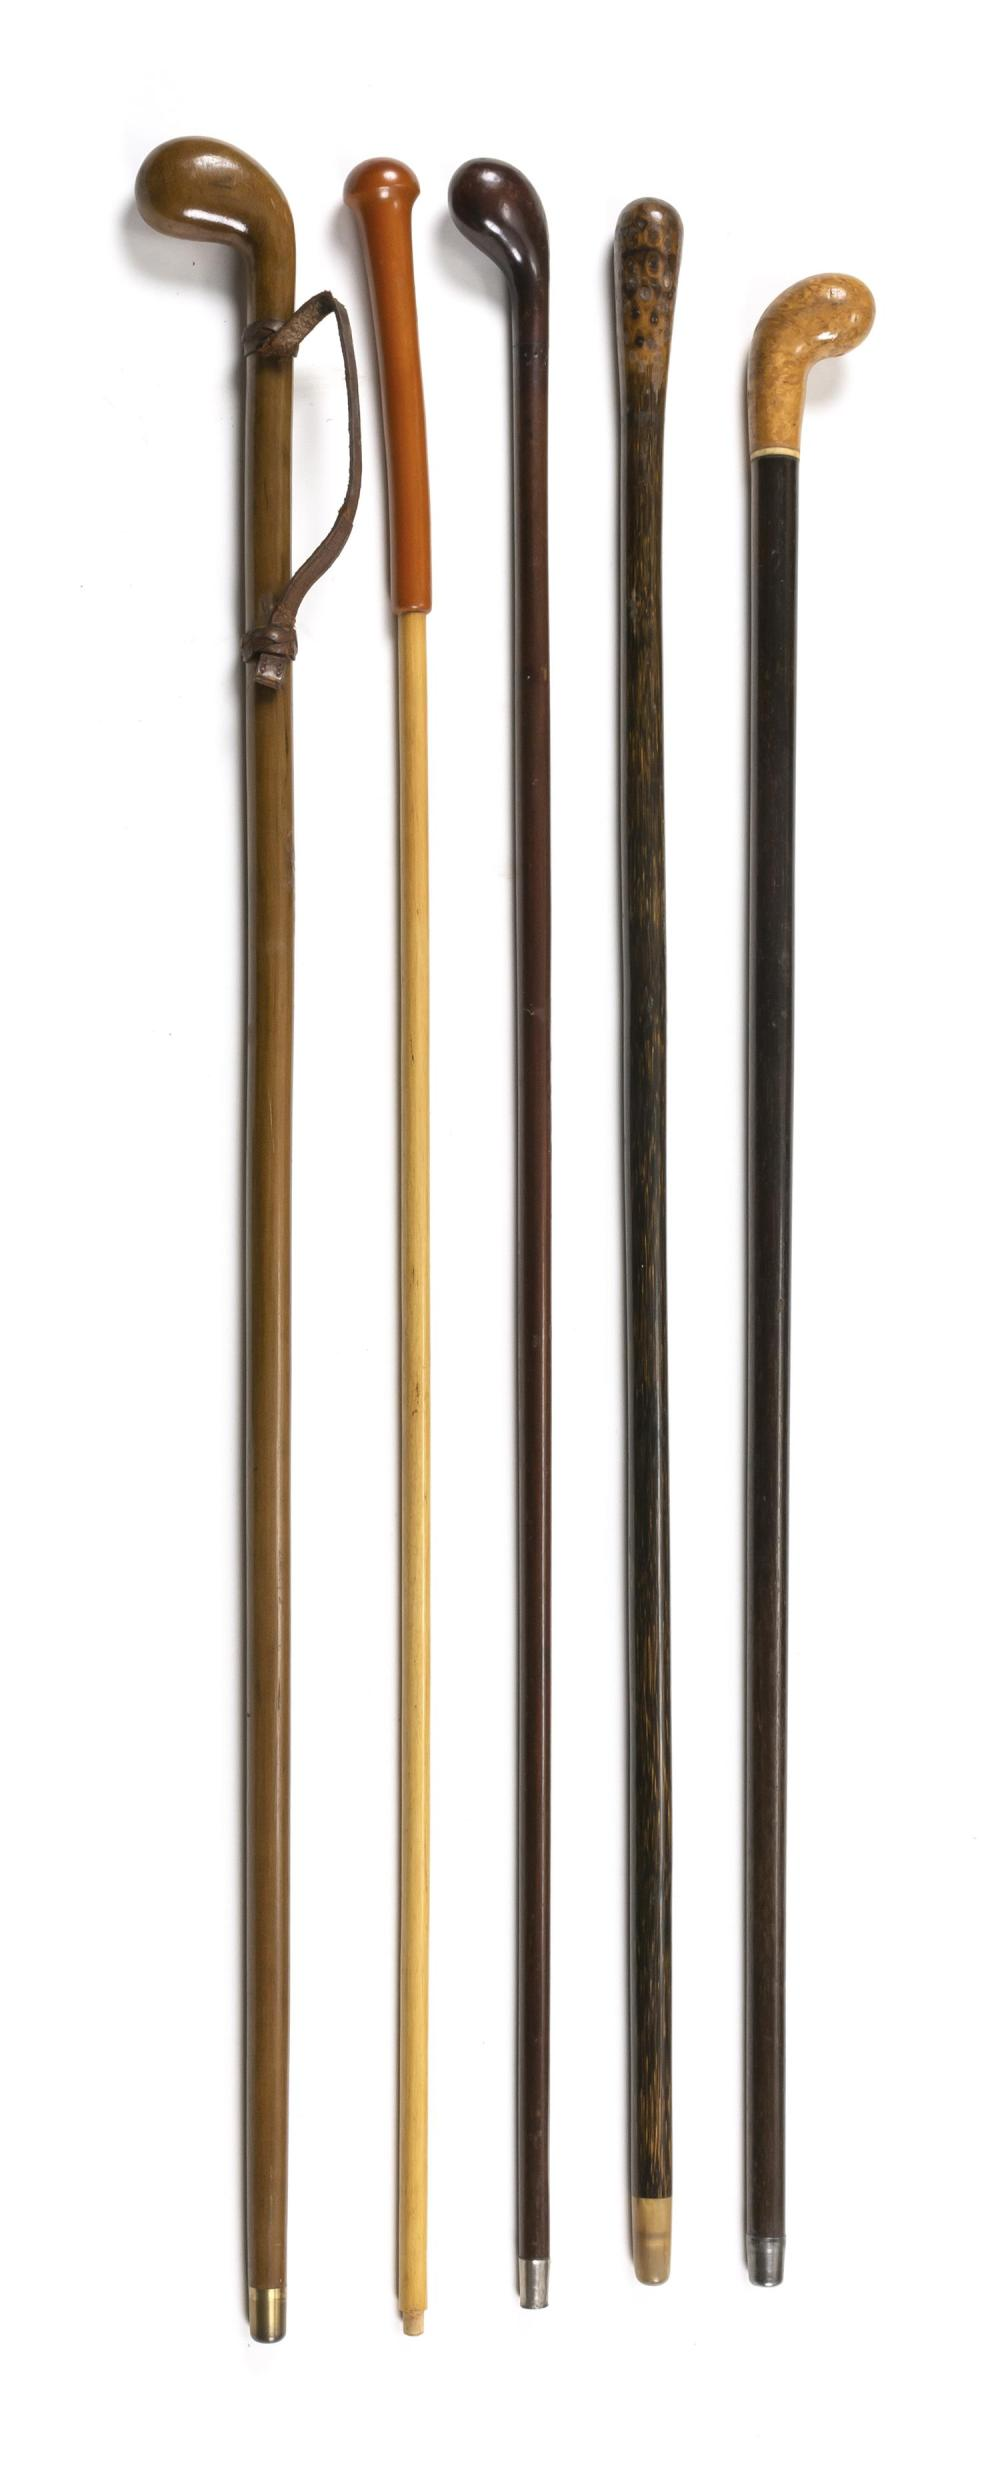 "FIVE CANES Mostly wood. One with horn ferrule. One with leather wrist cord and metal ferrule. Lengths from 34"" to 35.5""."